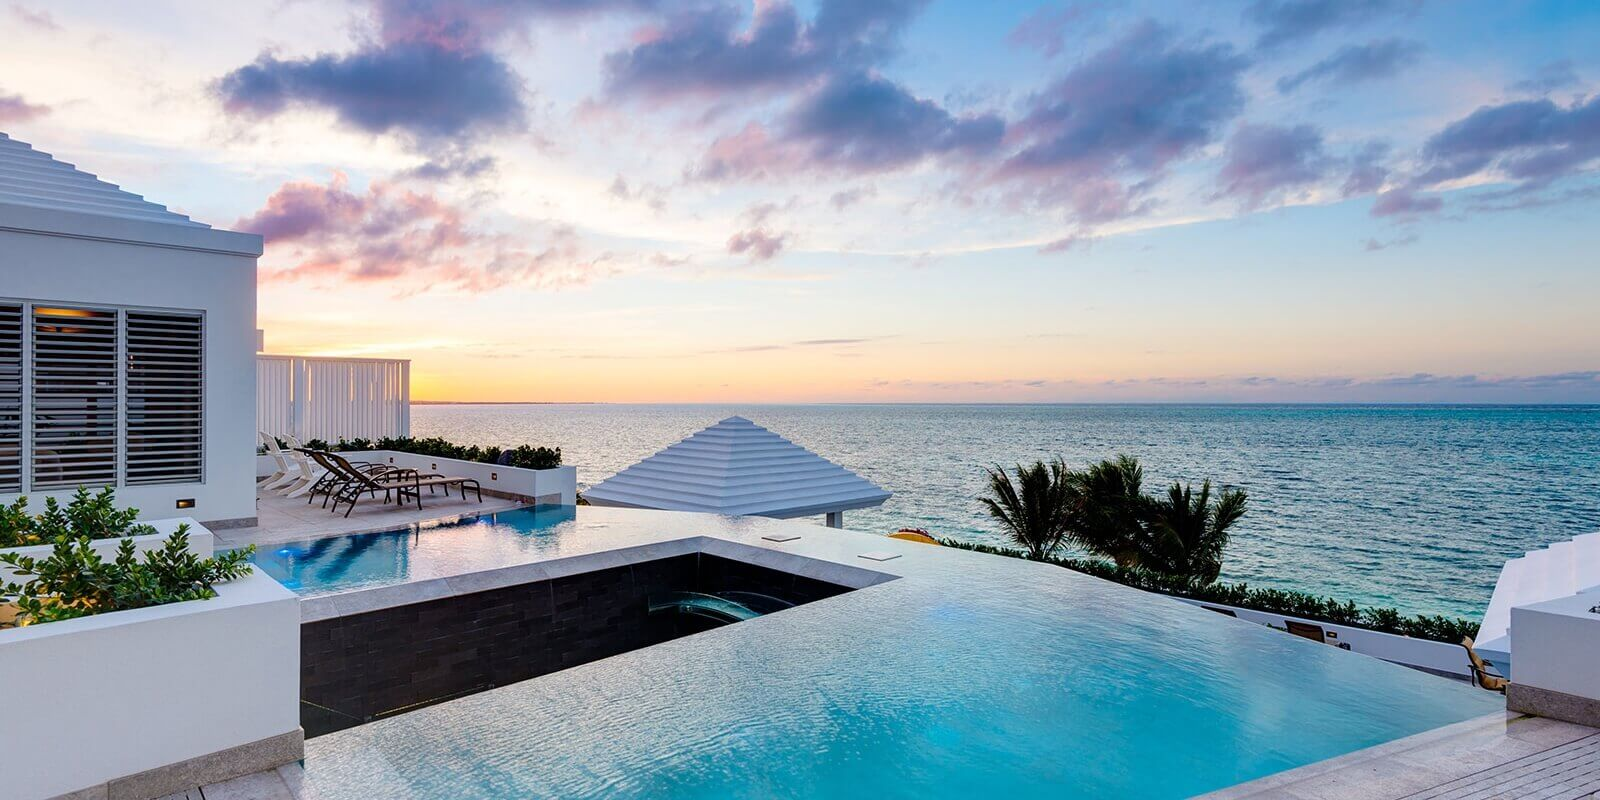 providing a boutique selection of luxurious serviced villas in the turks and caicos islands